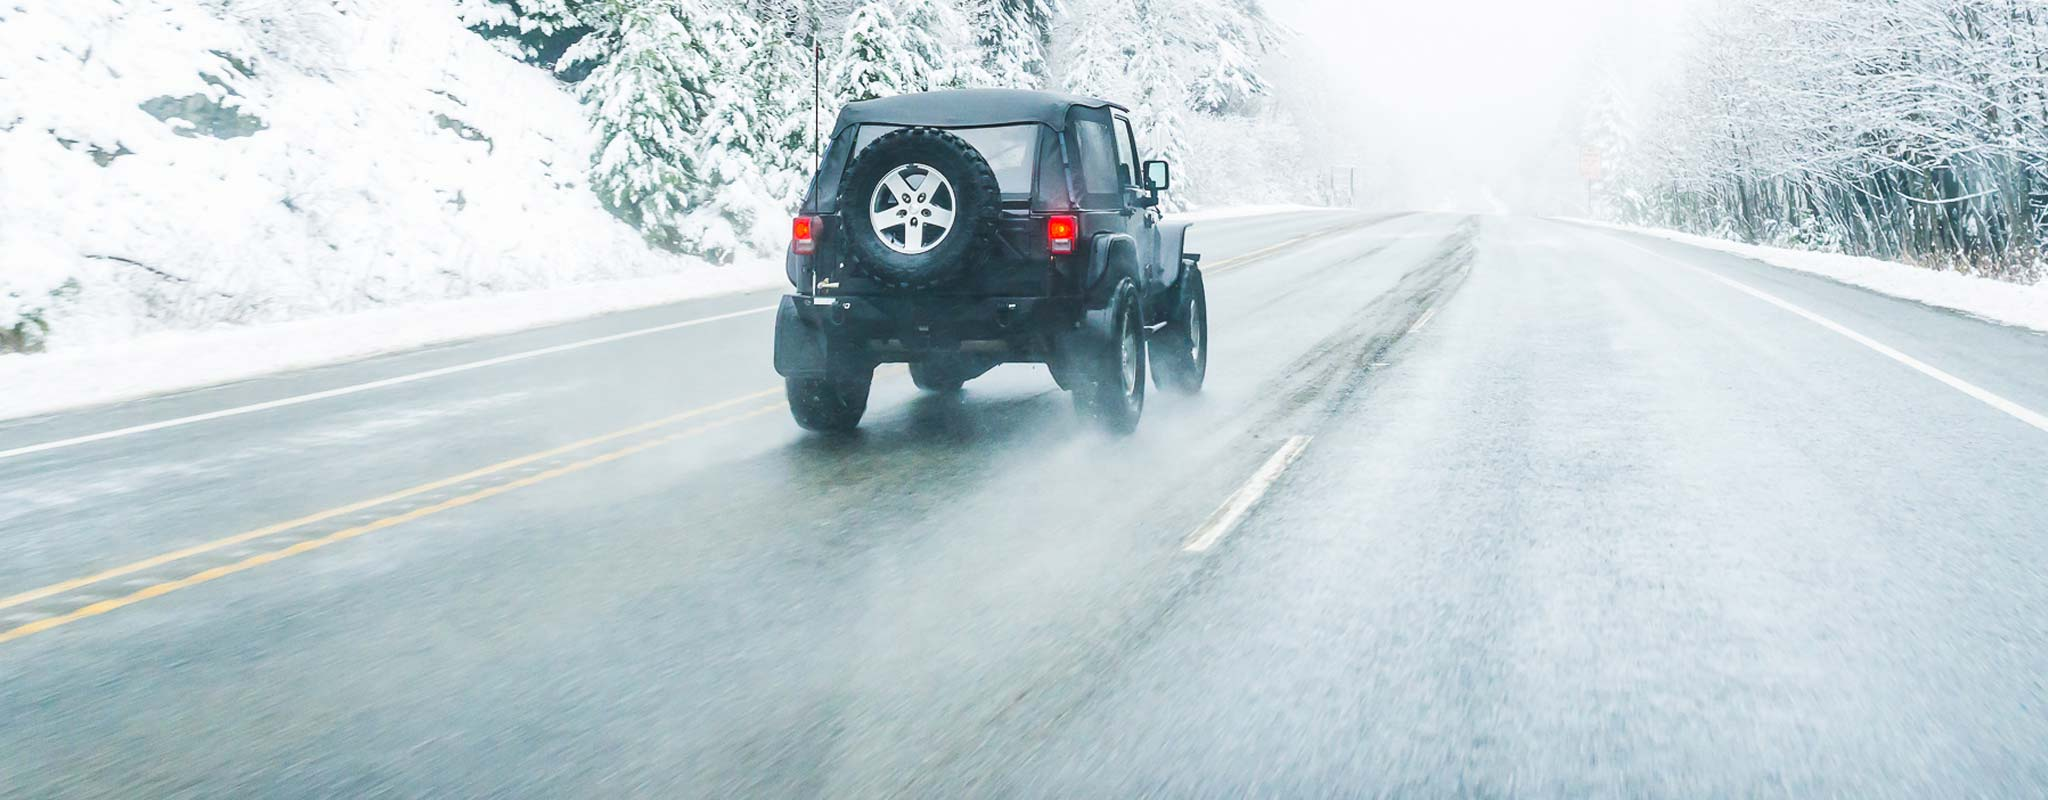 Jeep on snowy road.